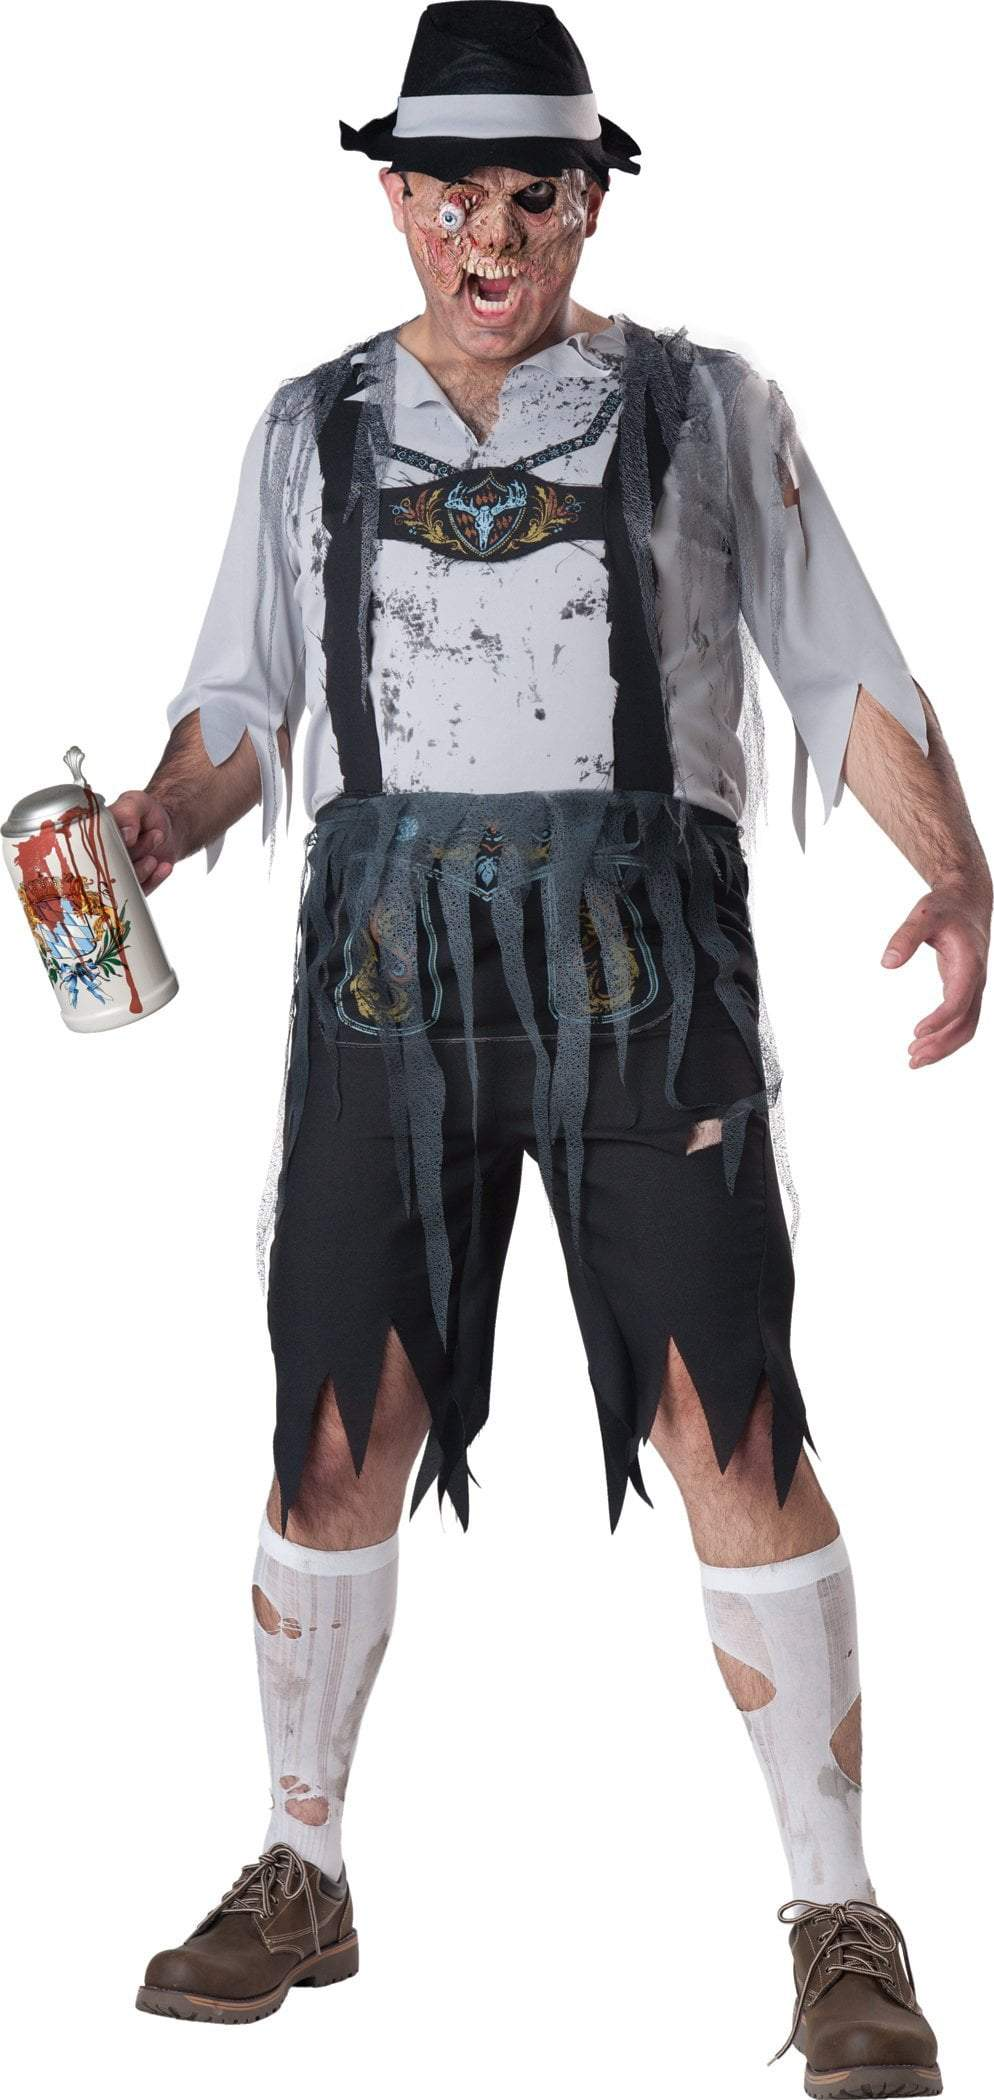 InCharacter Costumes XXLARGE Adult OktoberFEAST Plus Costume